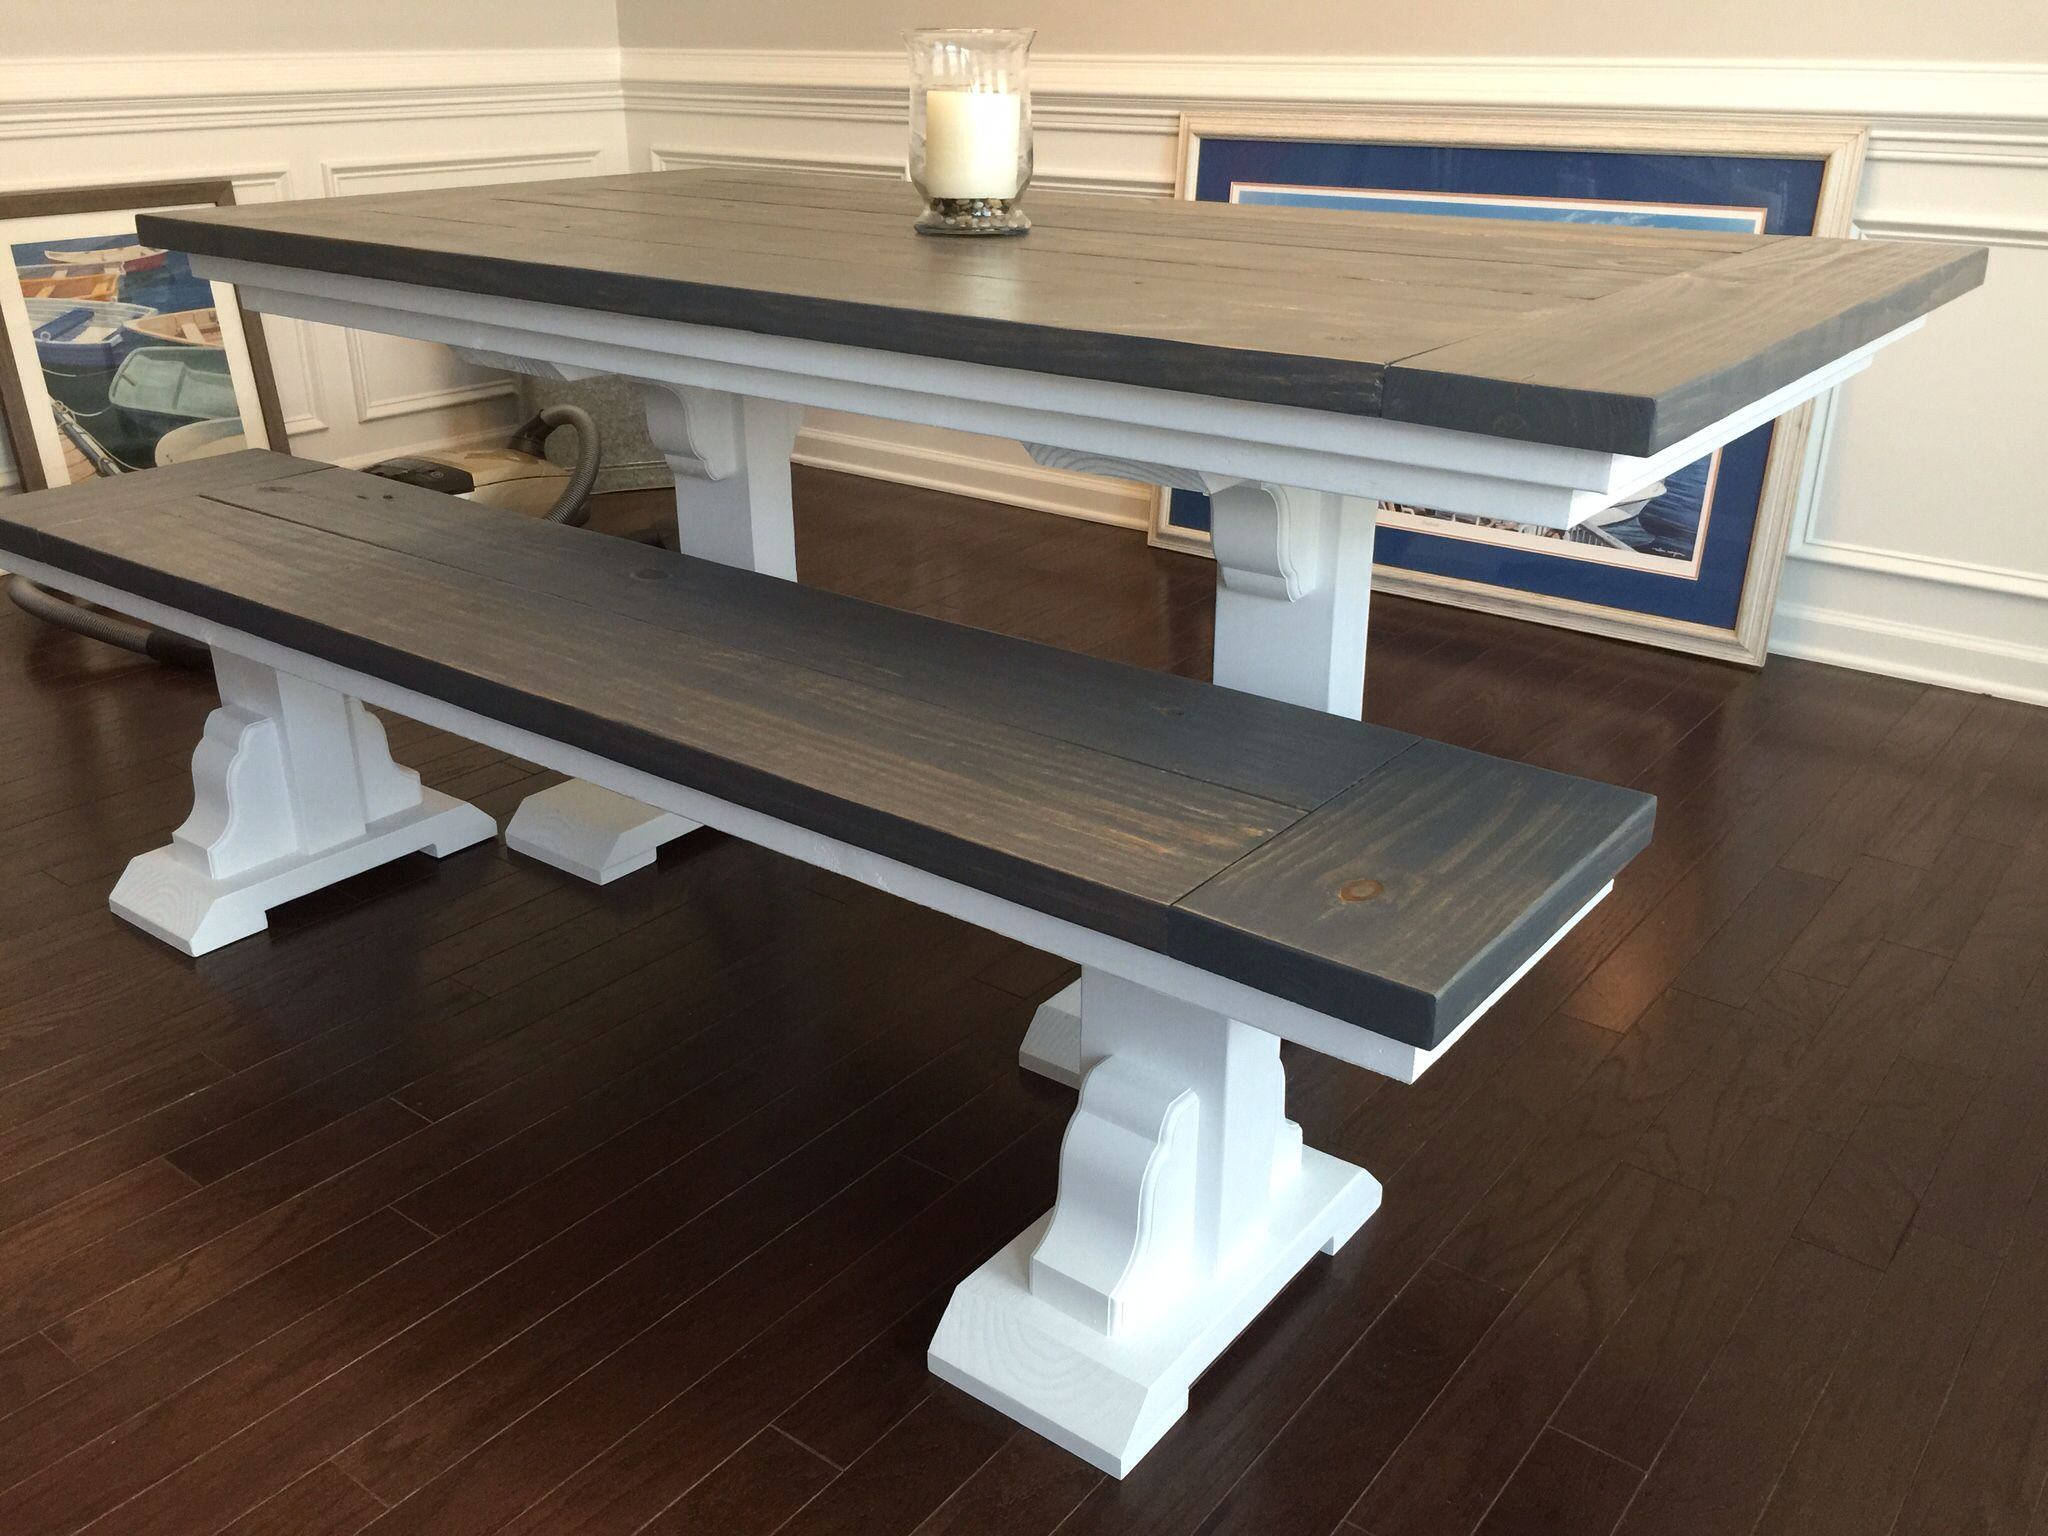 Farmhouse Table With Light Grey Base And Distressed Dark Top 4x4s 4x6s Were Used To Build The Matching Bench For More Seating